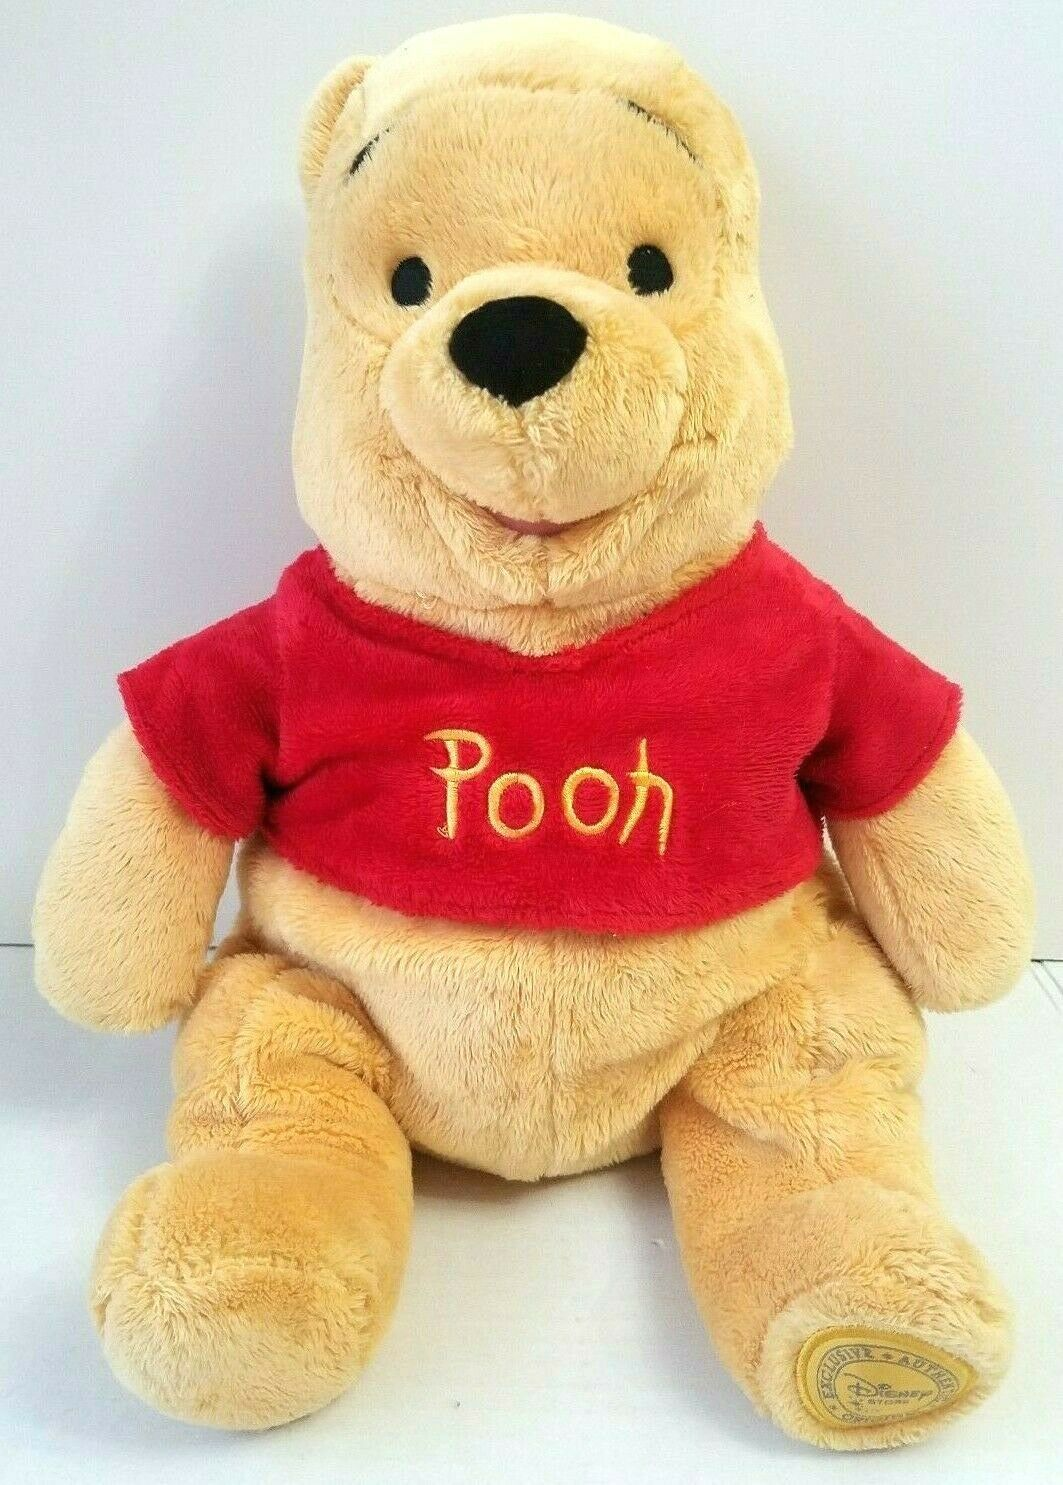 Disney Authentic Winnie The Pooh Plush Stuffed Animal Teddy Bear 17""